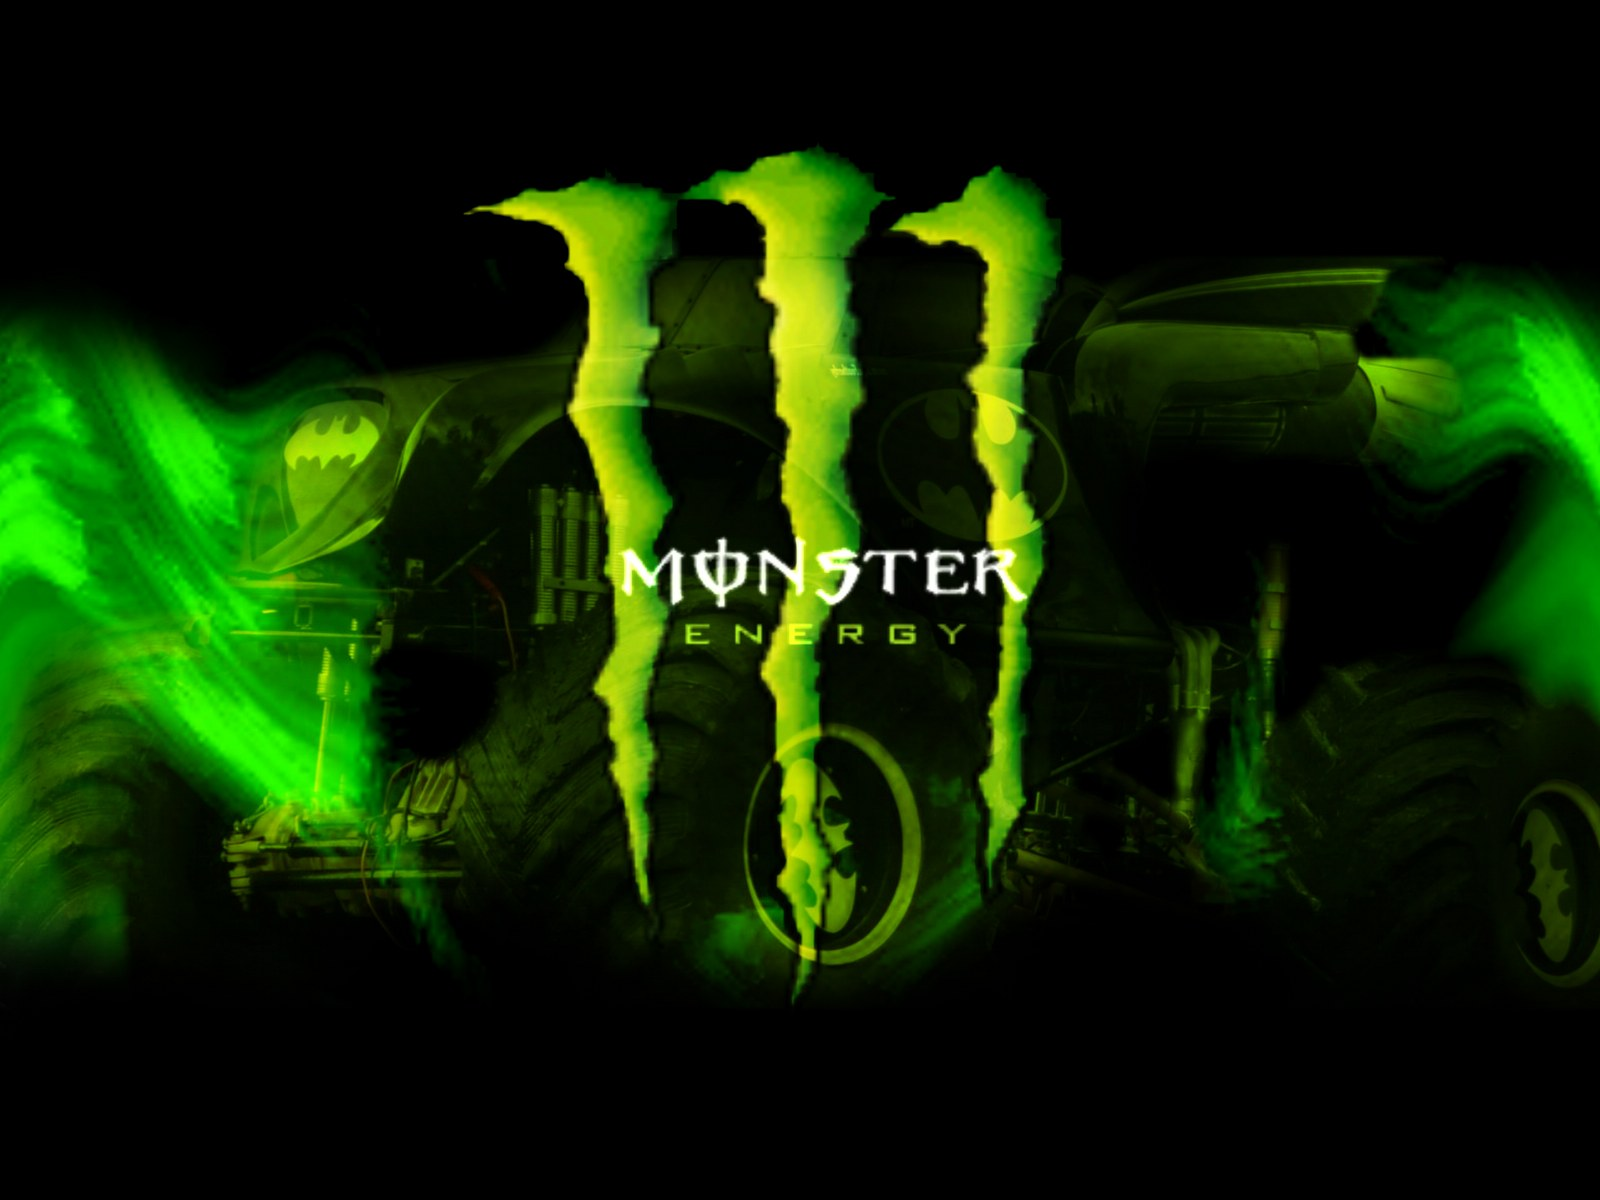 Hd Monster Energy Wallpapers Wallpapersafari